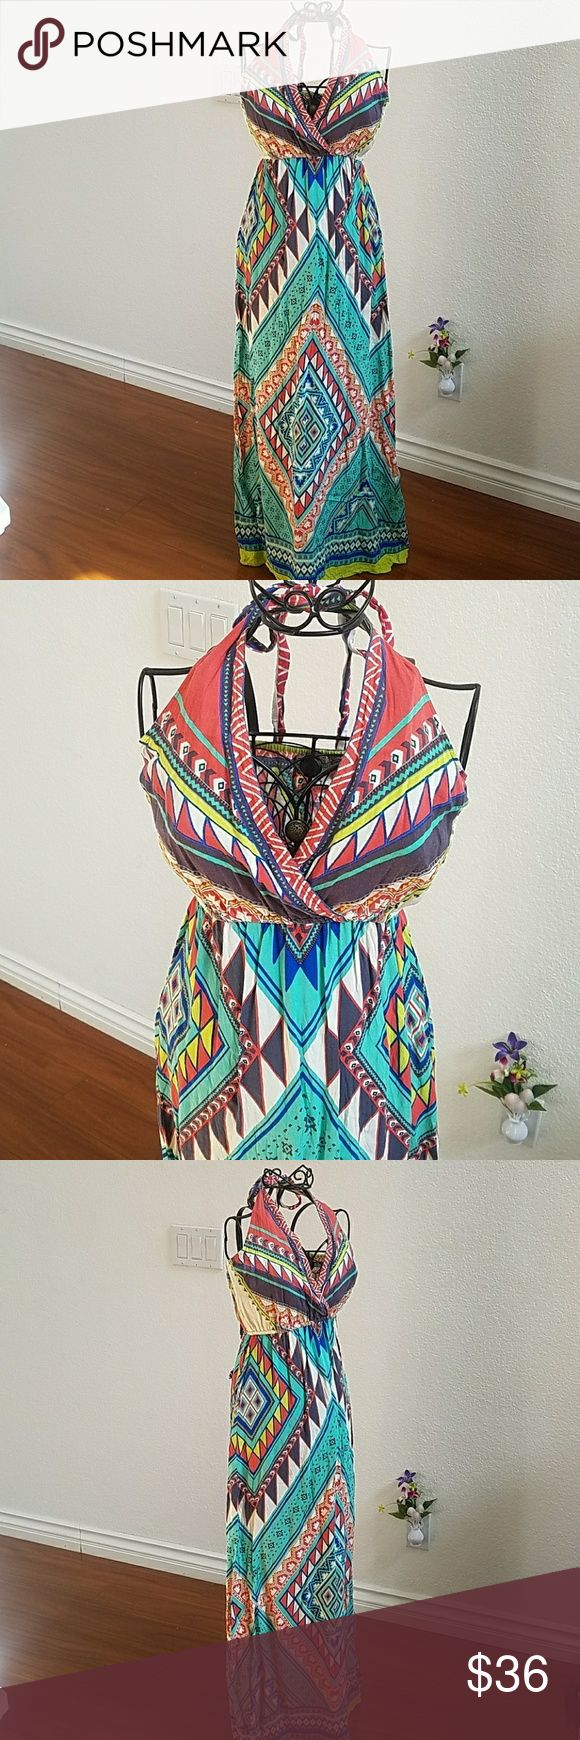 Flying Tomato halter boho tribal maxi dress New. Washed and ready to be worn. Beautiful, bright colors that would pair well with a black cardigan. Feel free to ask any questions prior to purchase. Flying Tomato Dresses Maxi